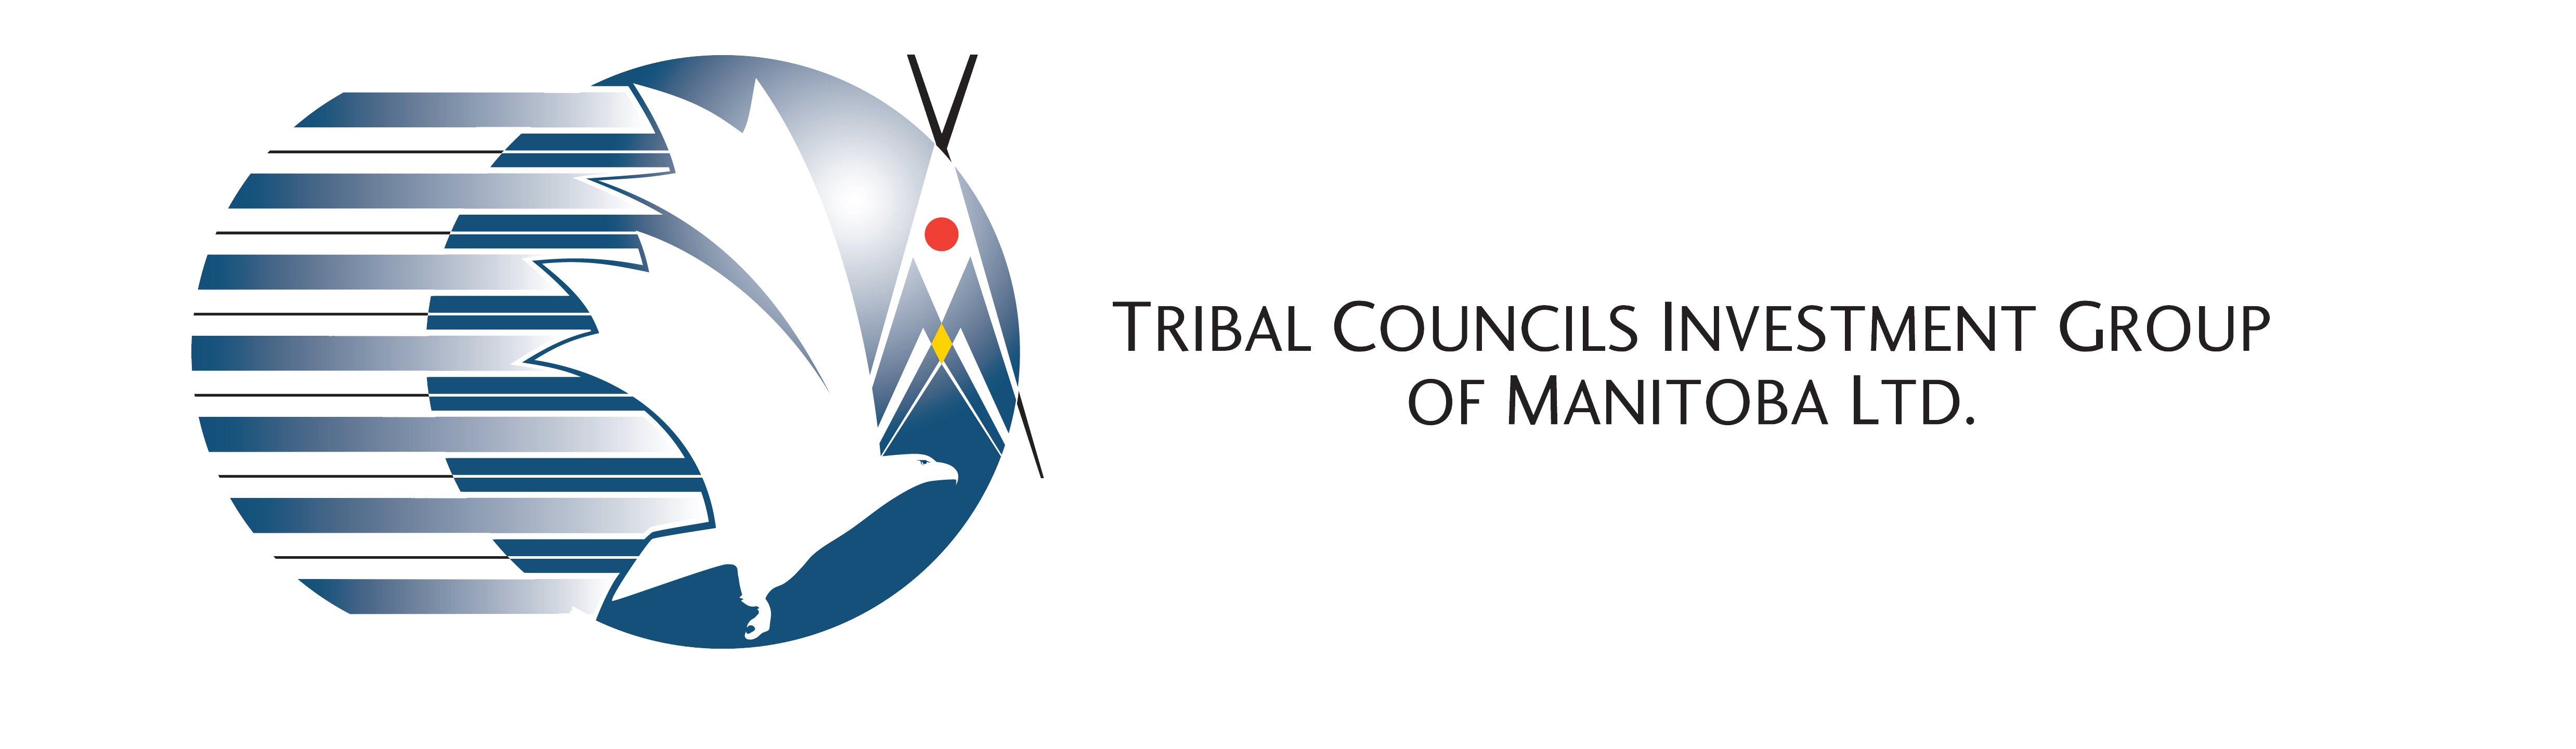 Tribal Councils Investment Group of Manitoba Ltd.